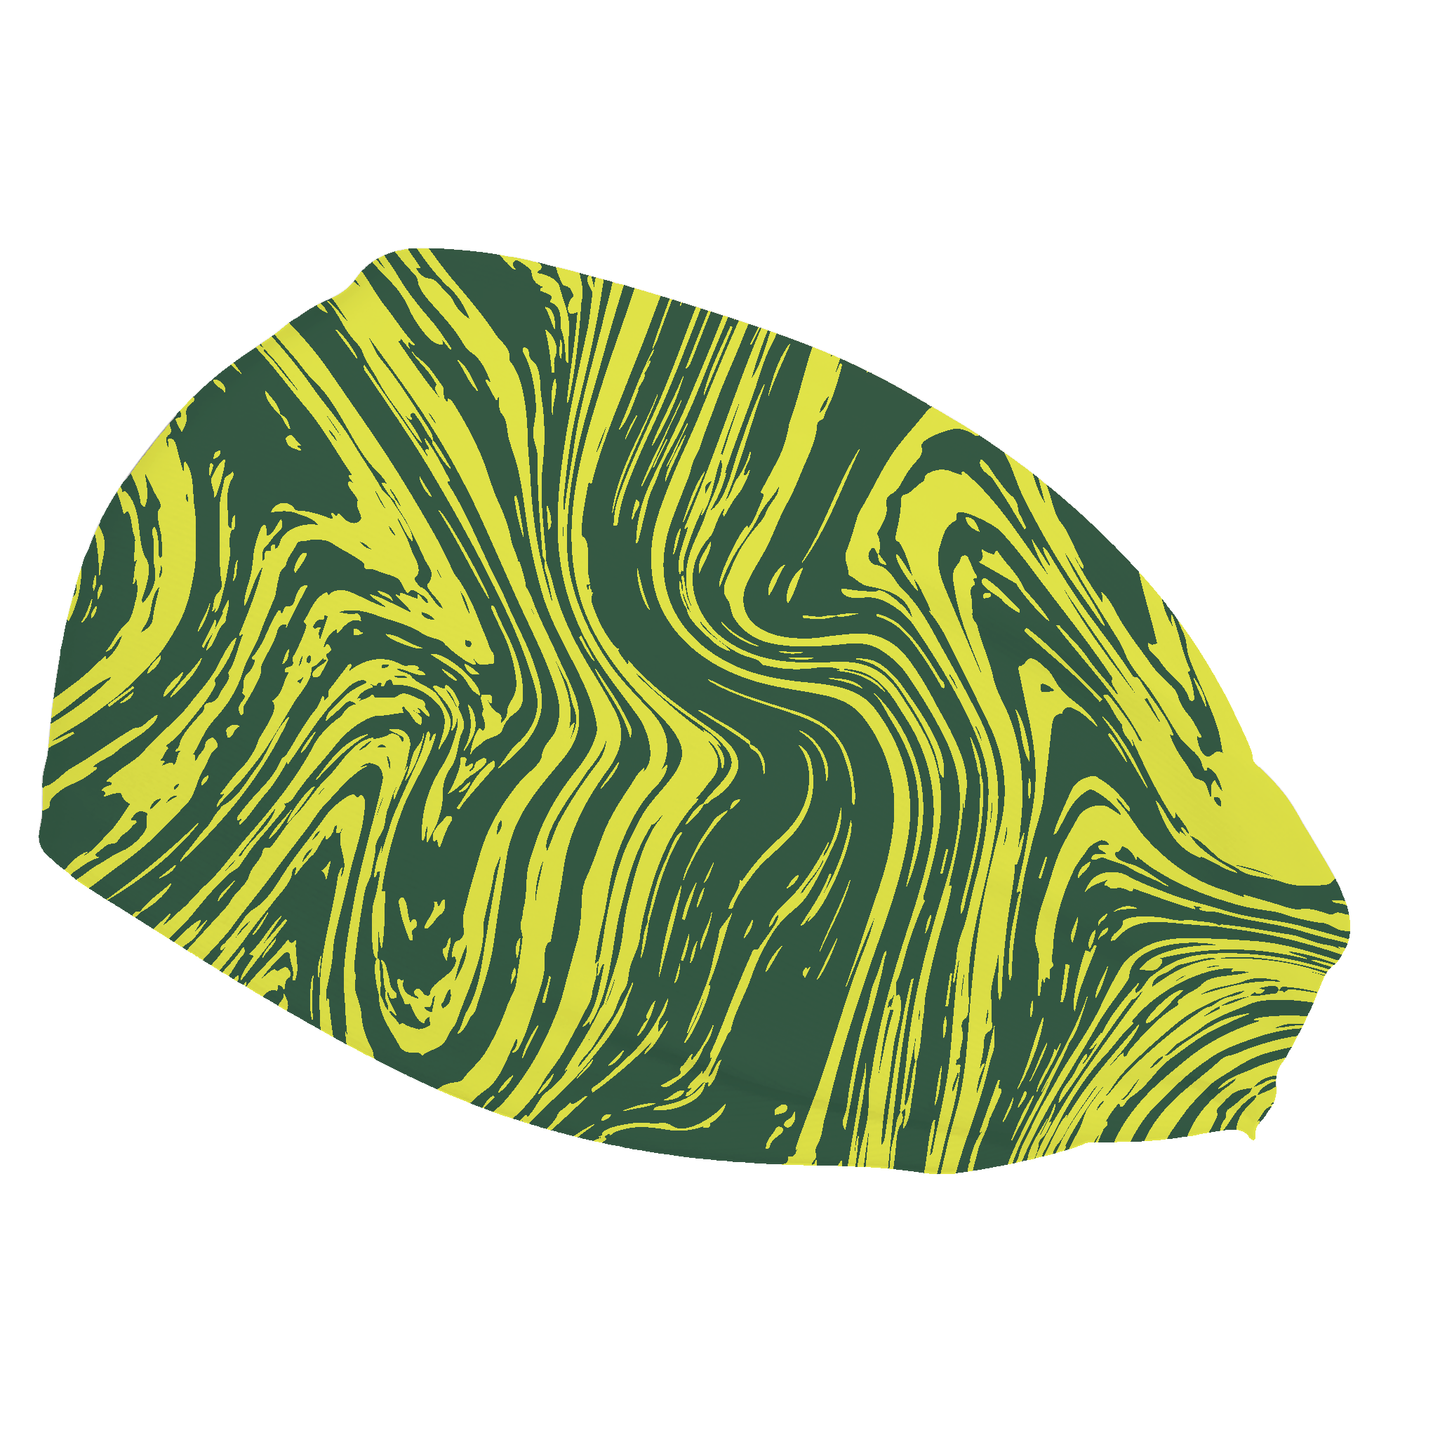 Yellow-Green Viper Hiji®Band Concussion Headband for Sports